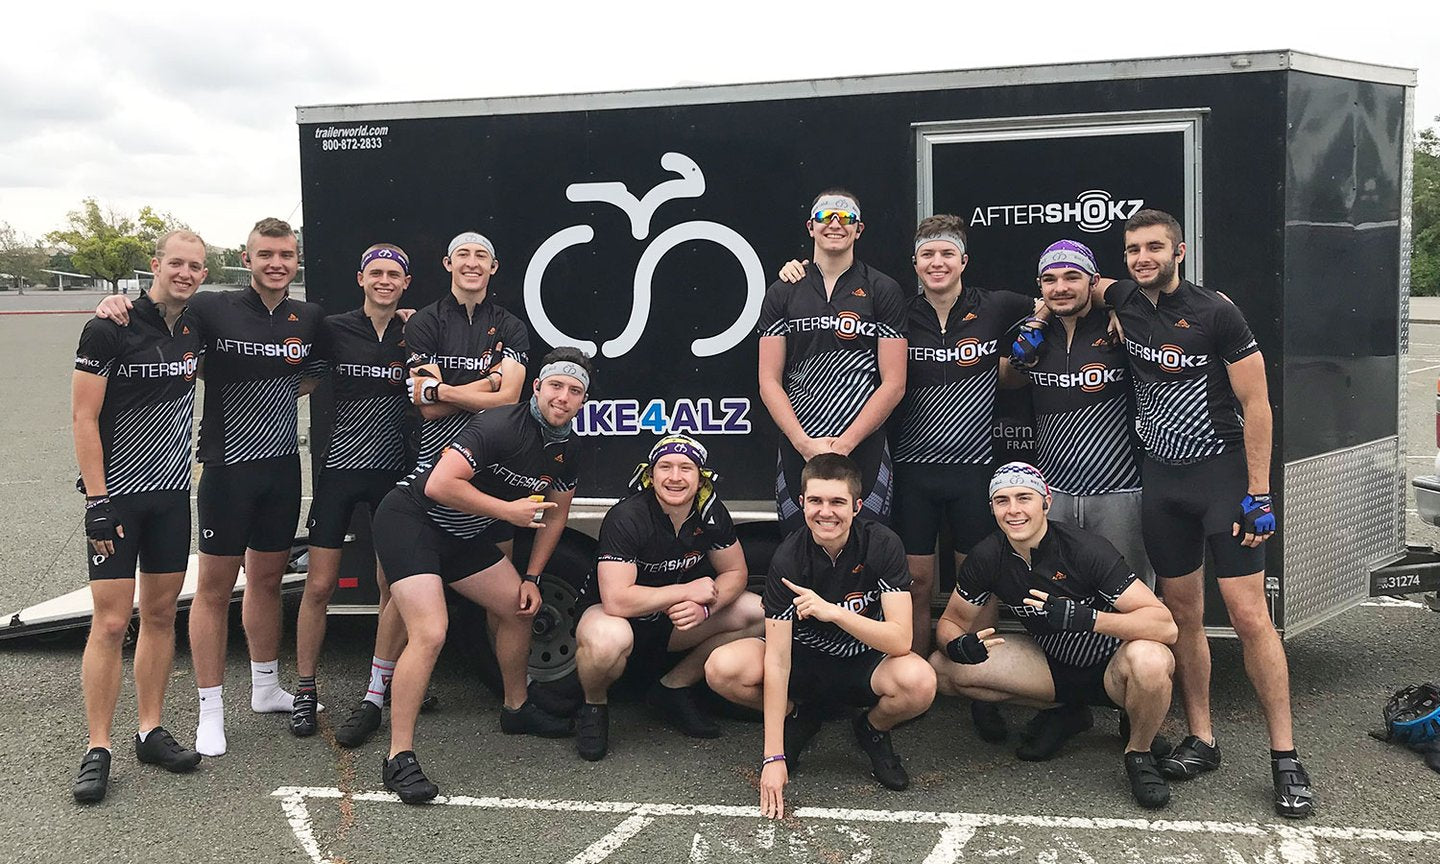 Q&A with the Bike4Alz Crew About to Embark on a 3600-mile Cycling Quest to End Alzheimer's Disease